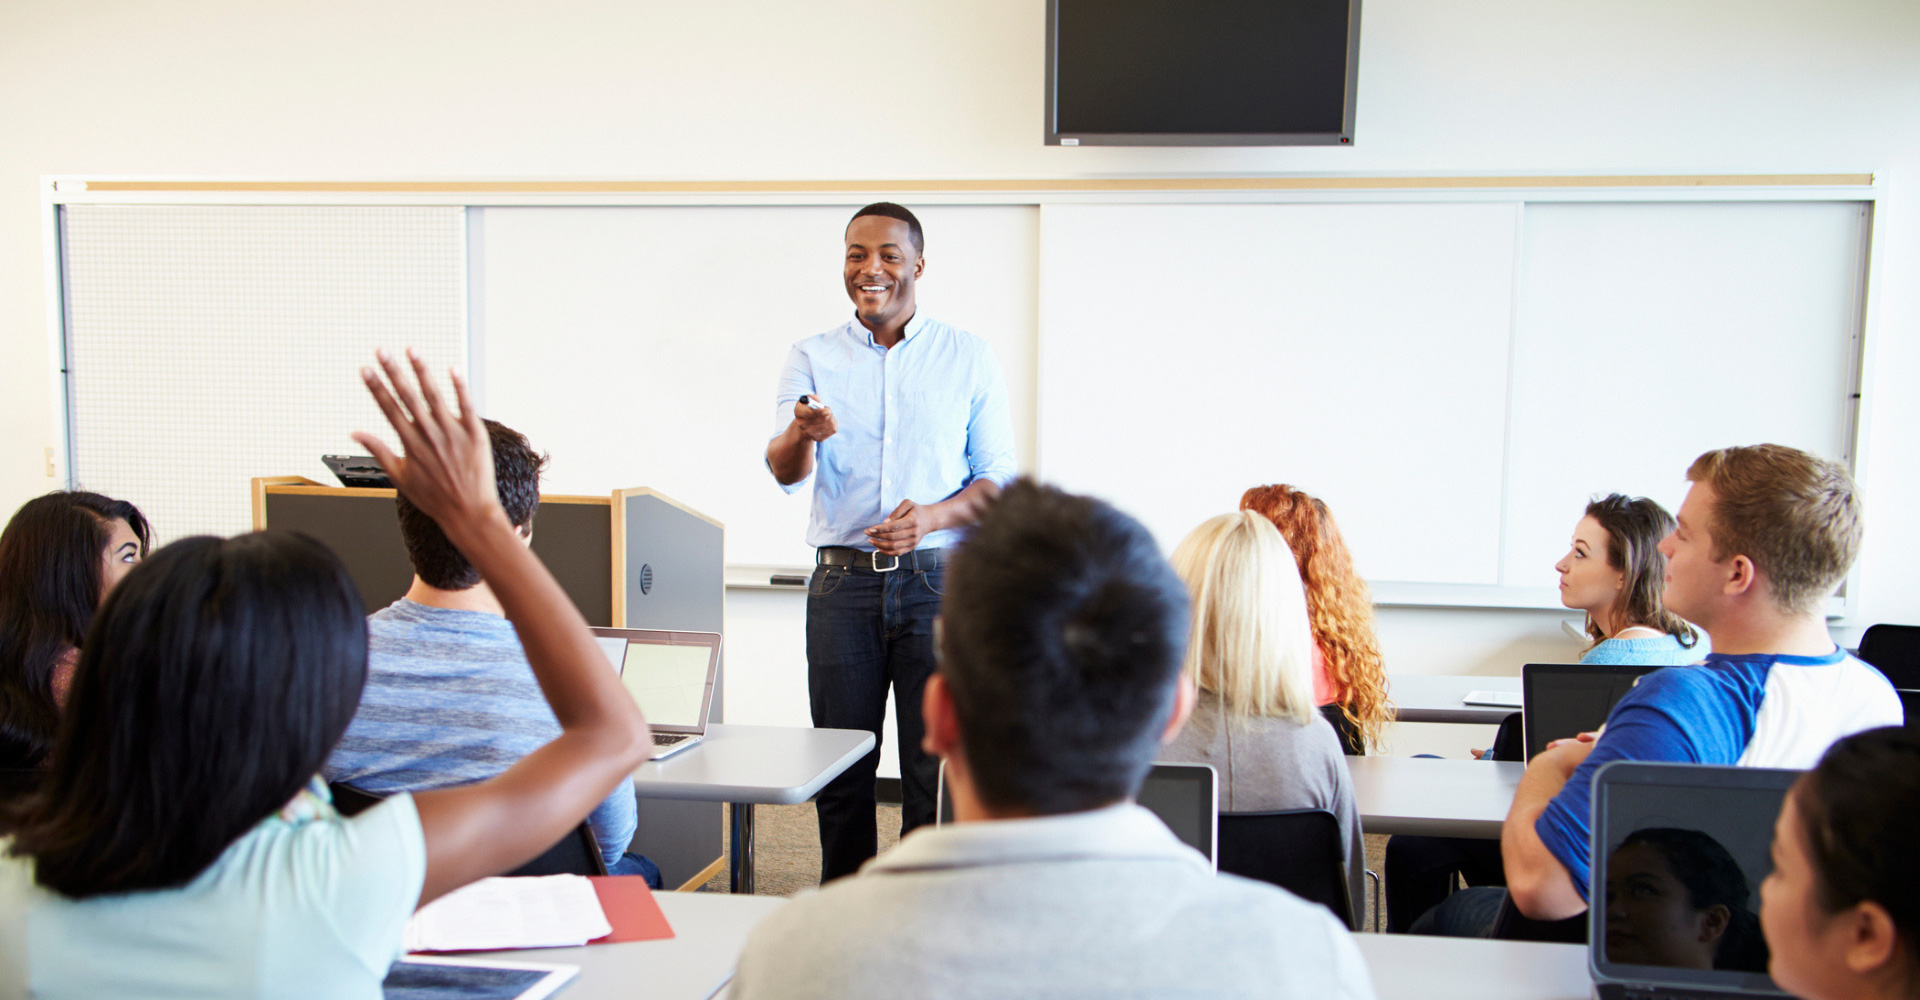 Best Practices in the Evaluation of Teaching